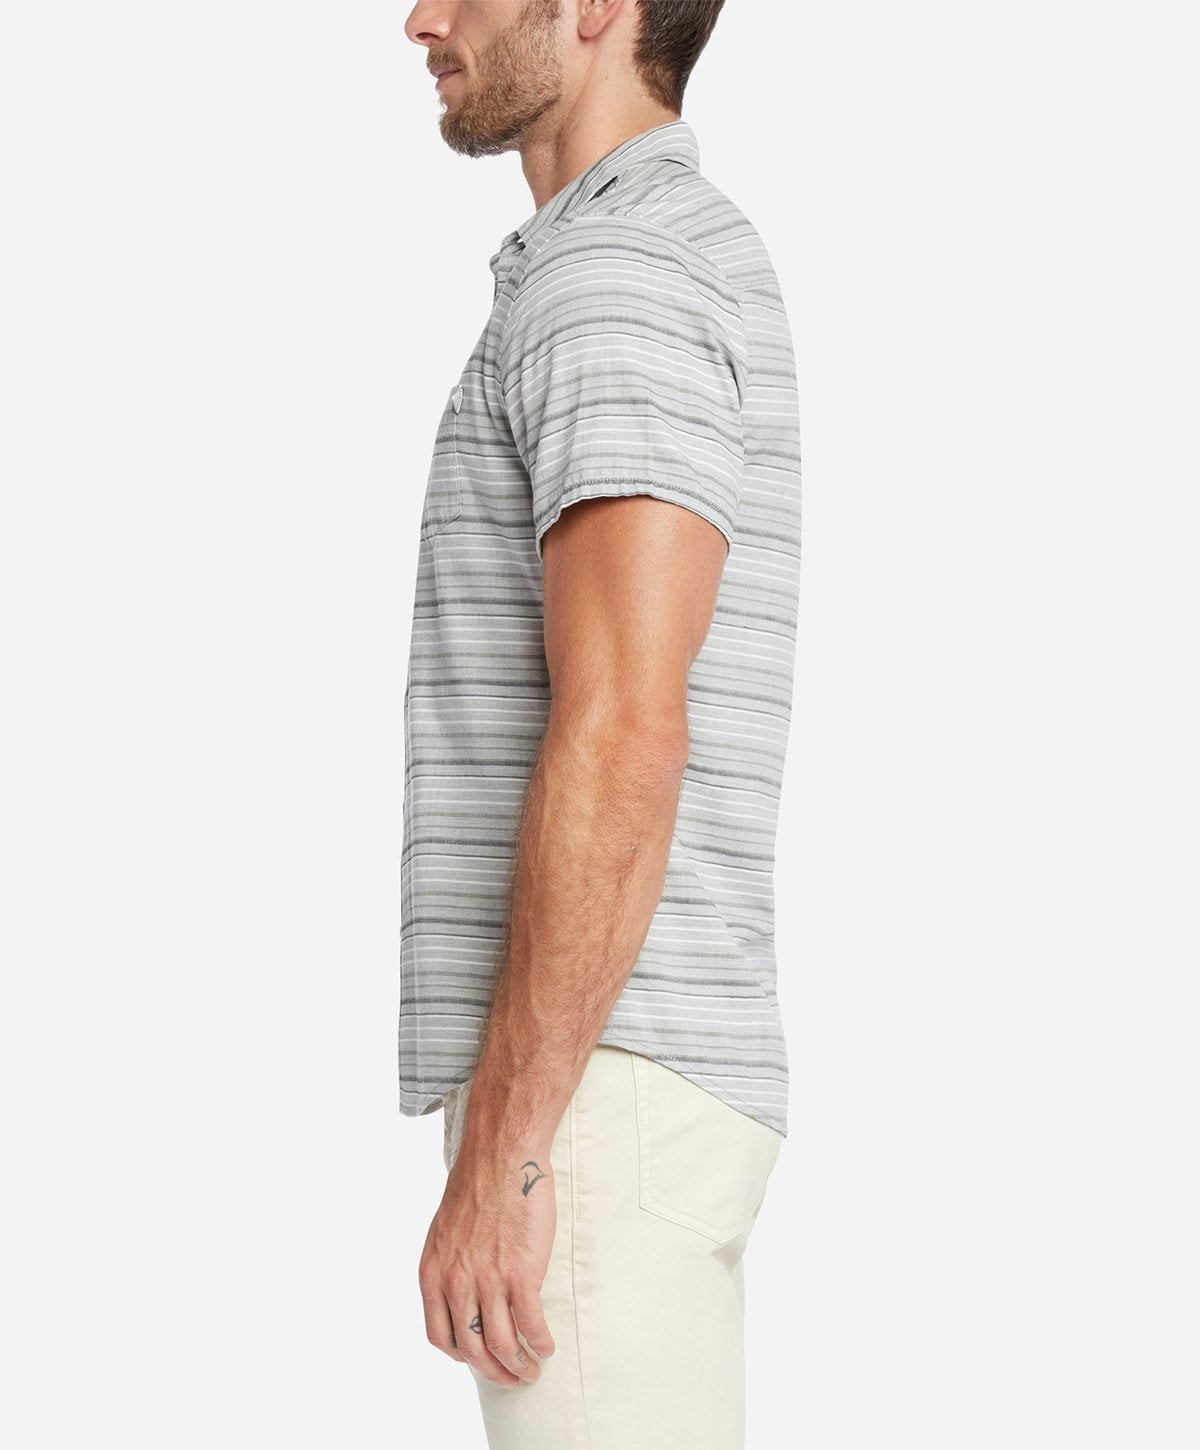 Acapulco Short Sleeve Shirt - Heather Grey